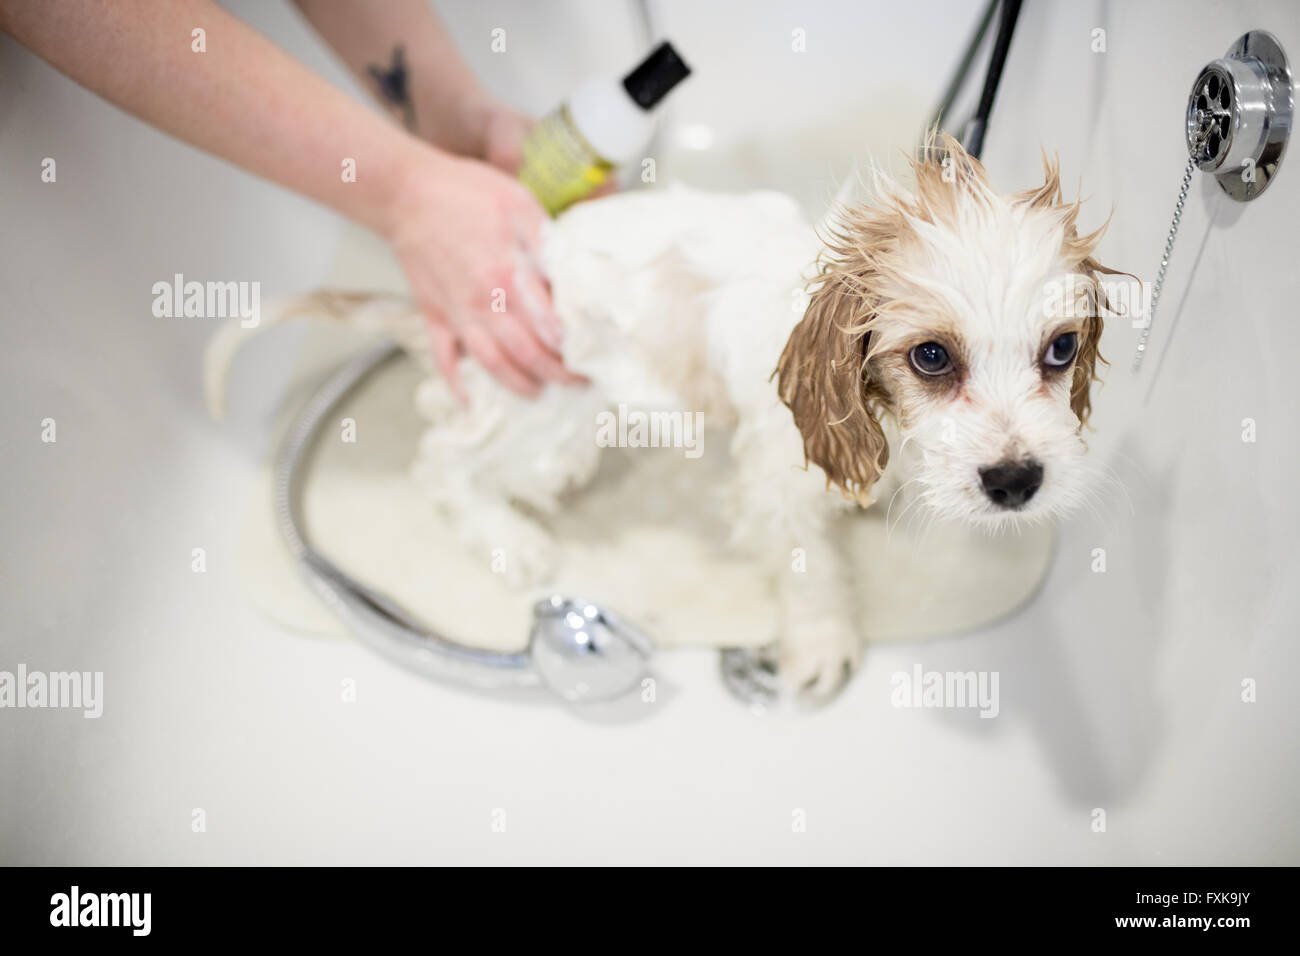 Vet giving shower to dog - Stock Image